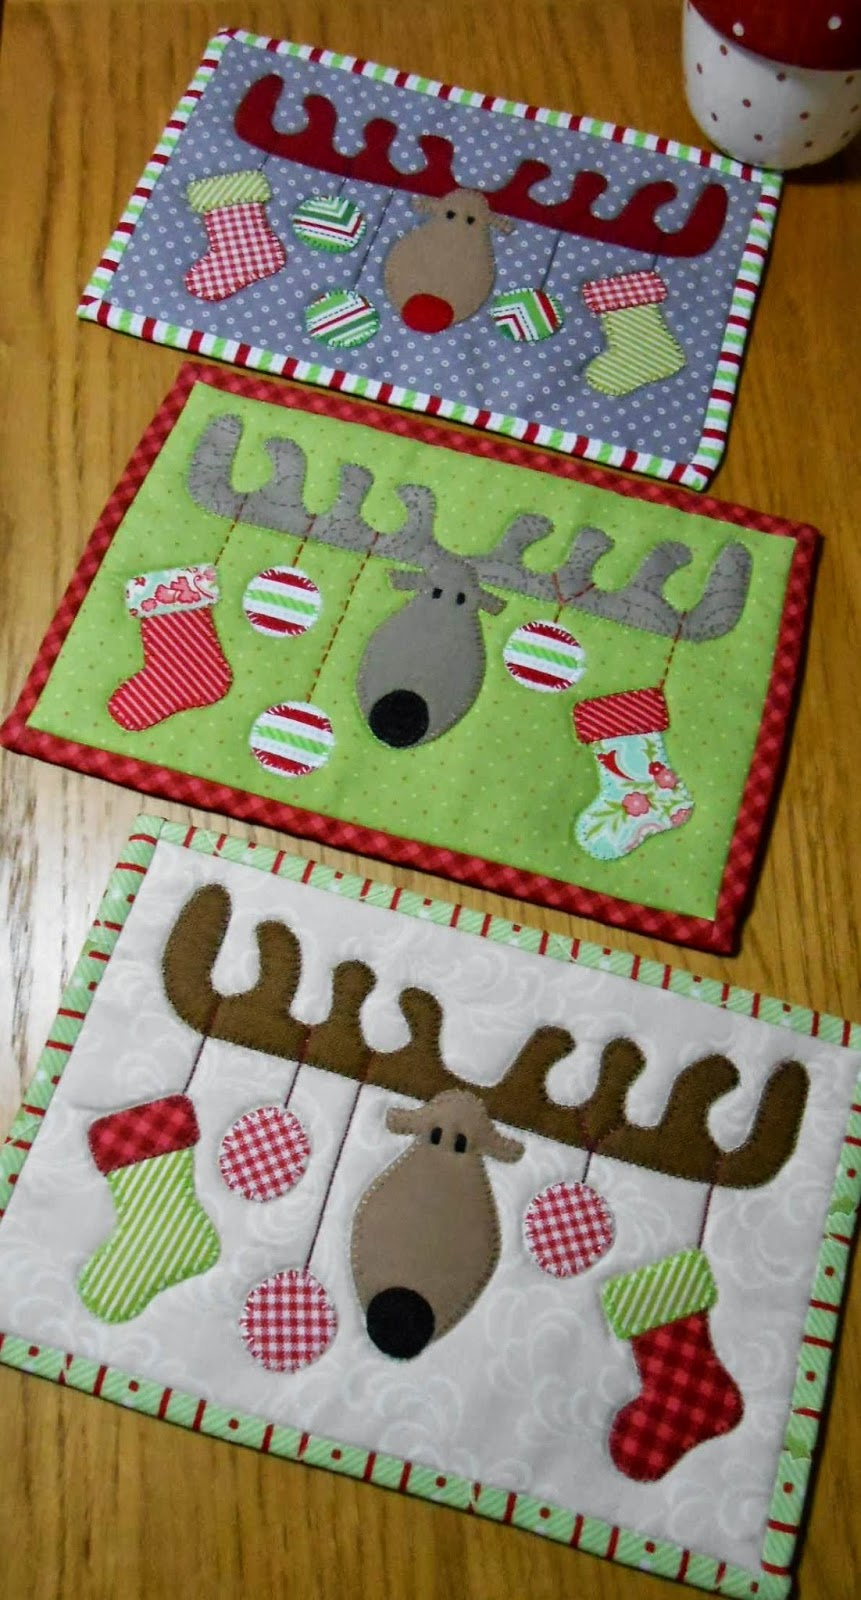 http://www.craftsy.com/pattern/quilting/home-decor/christmas-antlers-mug-rug/113926